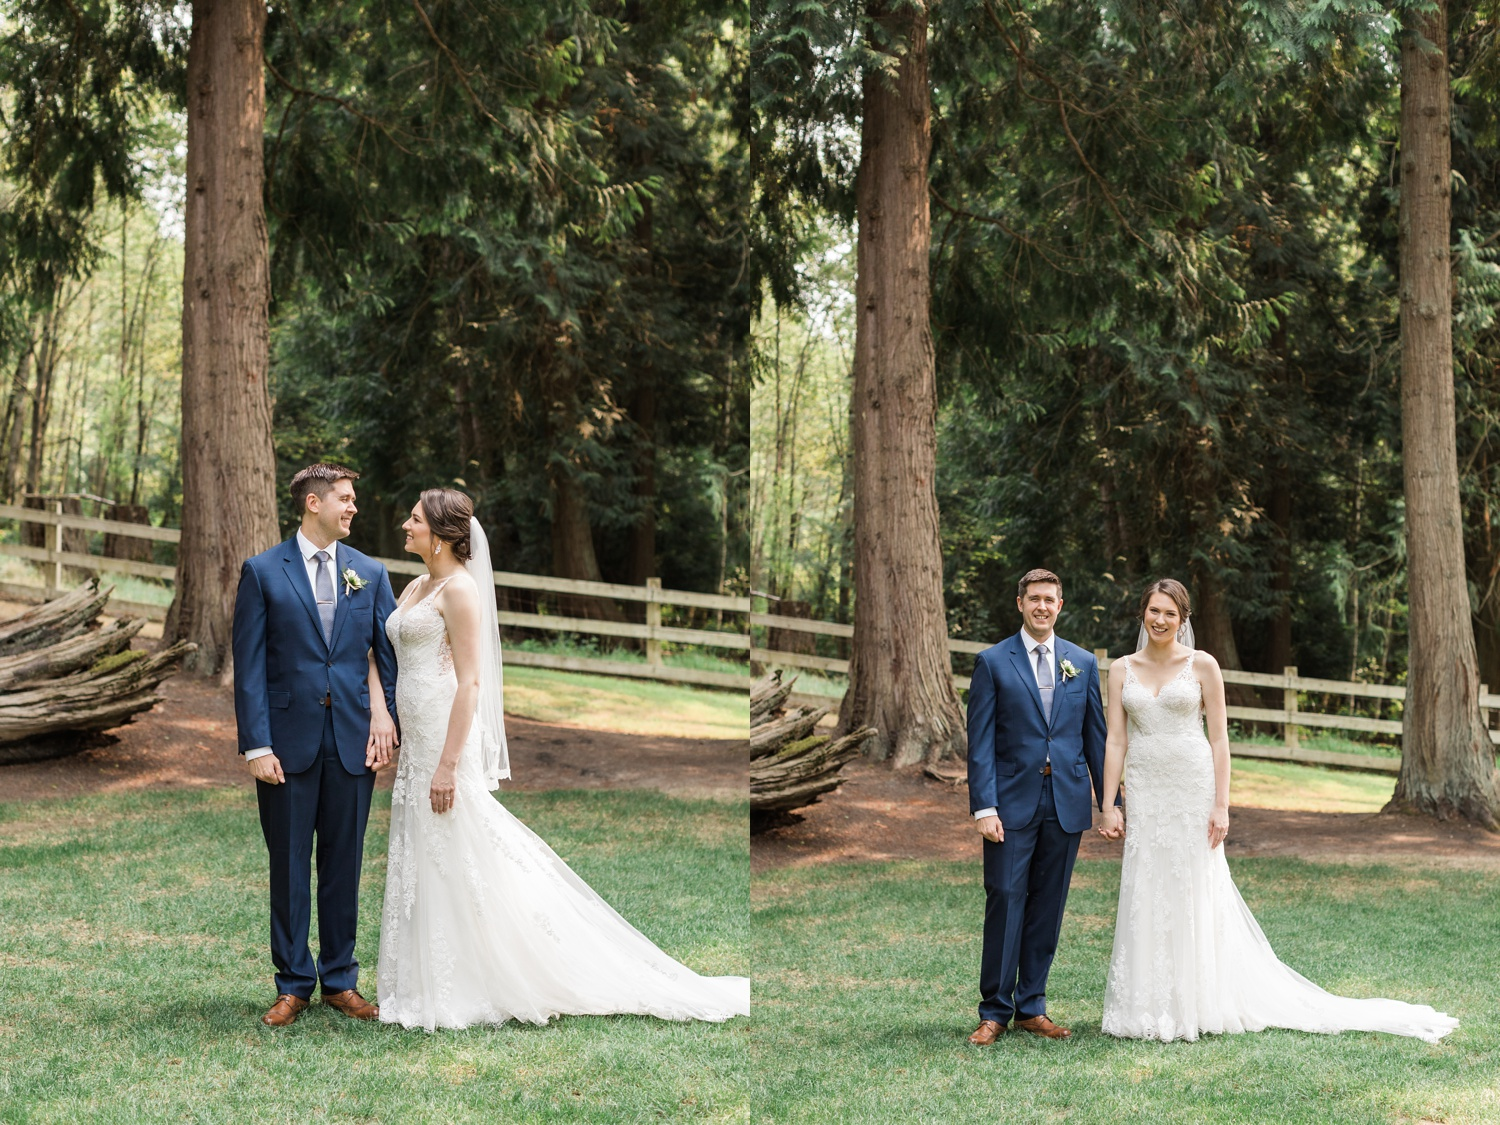 A bride and groom stand outdoors before their wedding at Chateau Lill in Woodinville, a wedding venue near Seattle, WA.   Joanna Monger Photography   Seattle & Snohomish Photographer